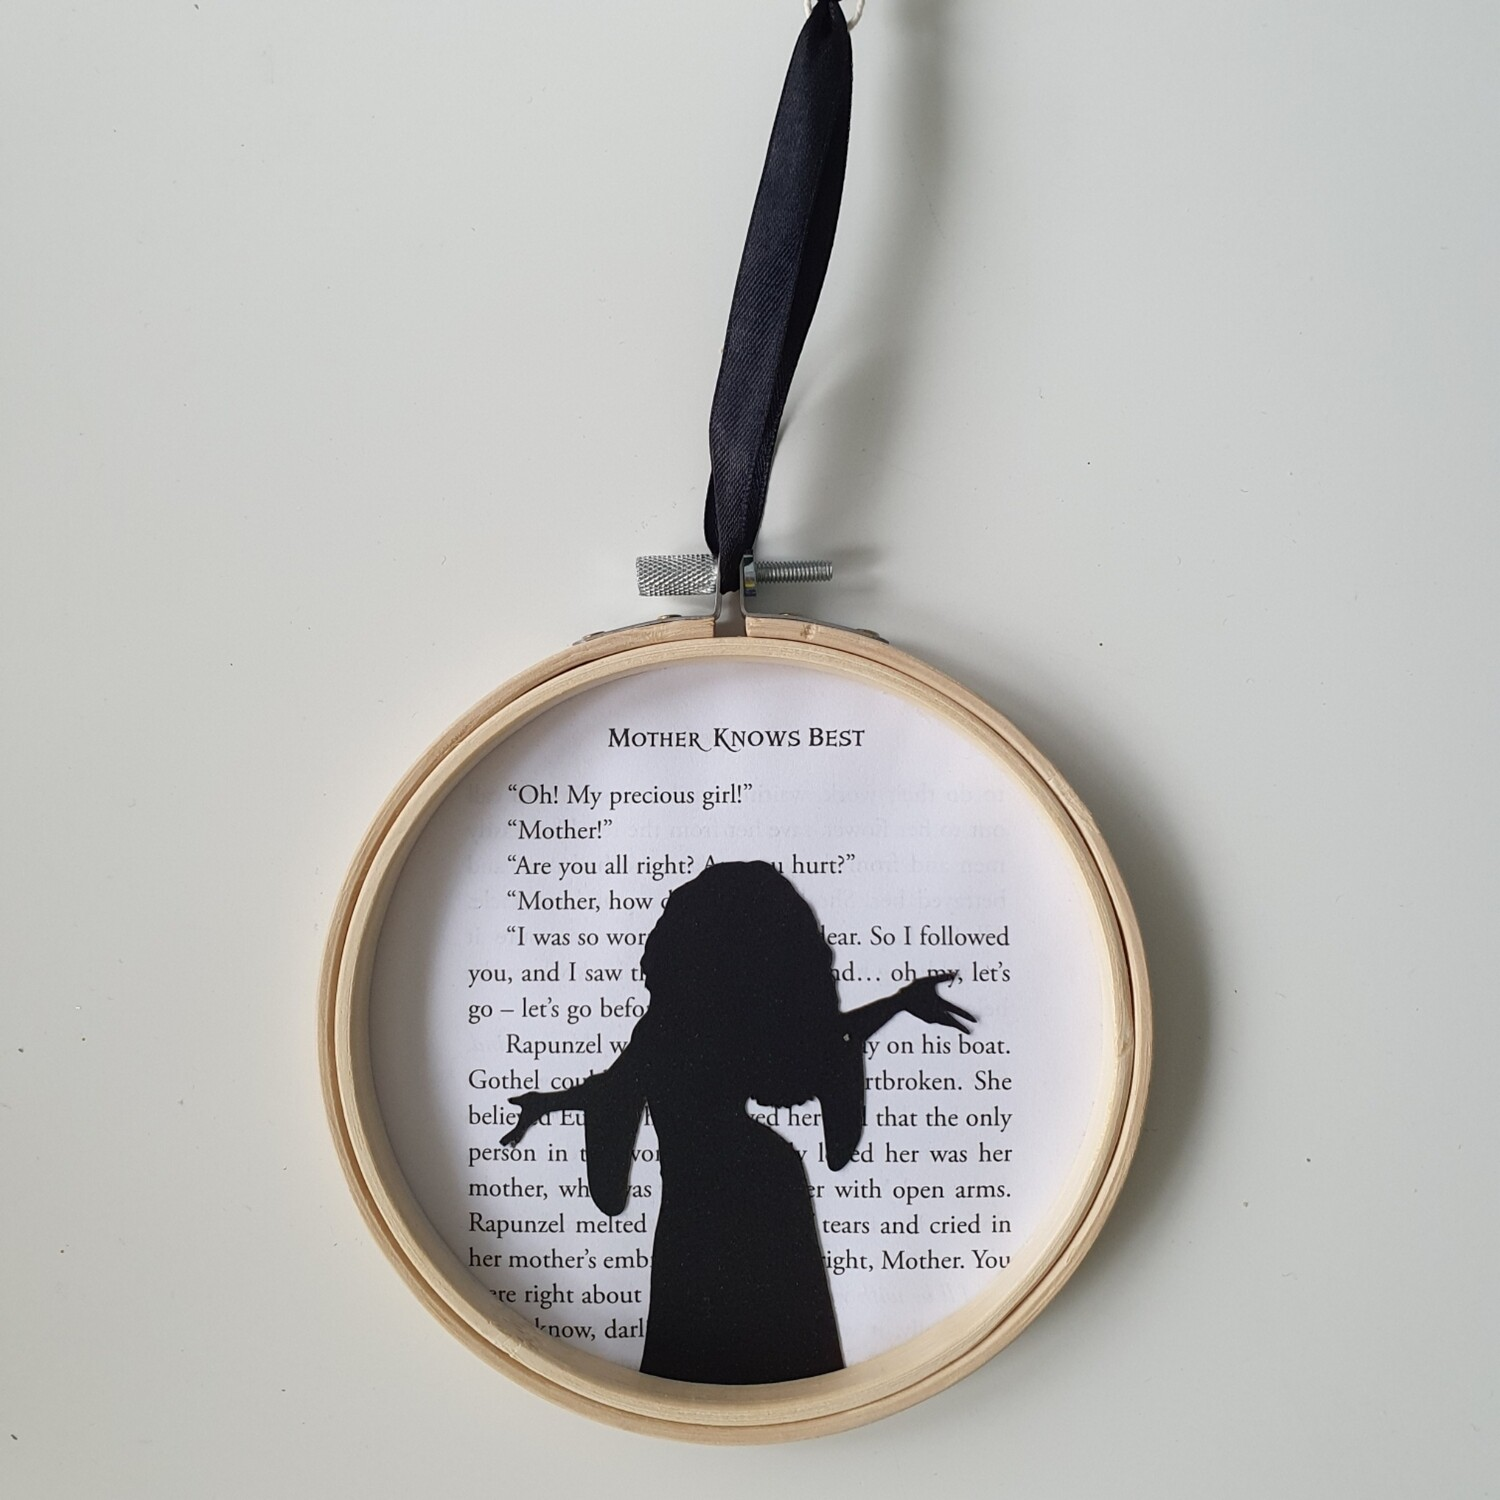 Mother Knows Best - Mother Gothel made from original book pages